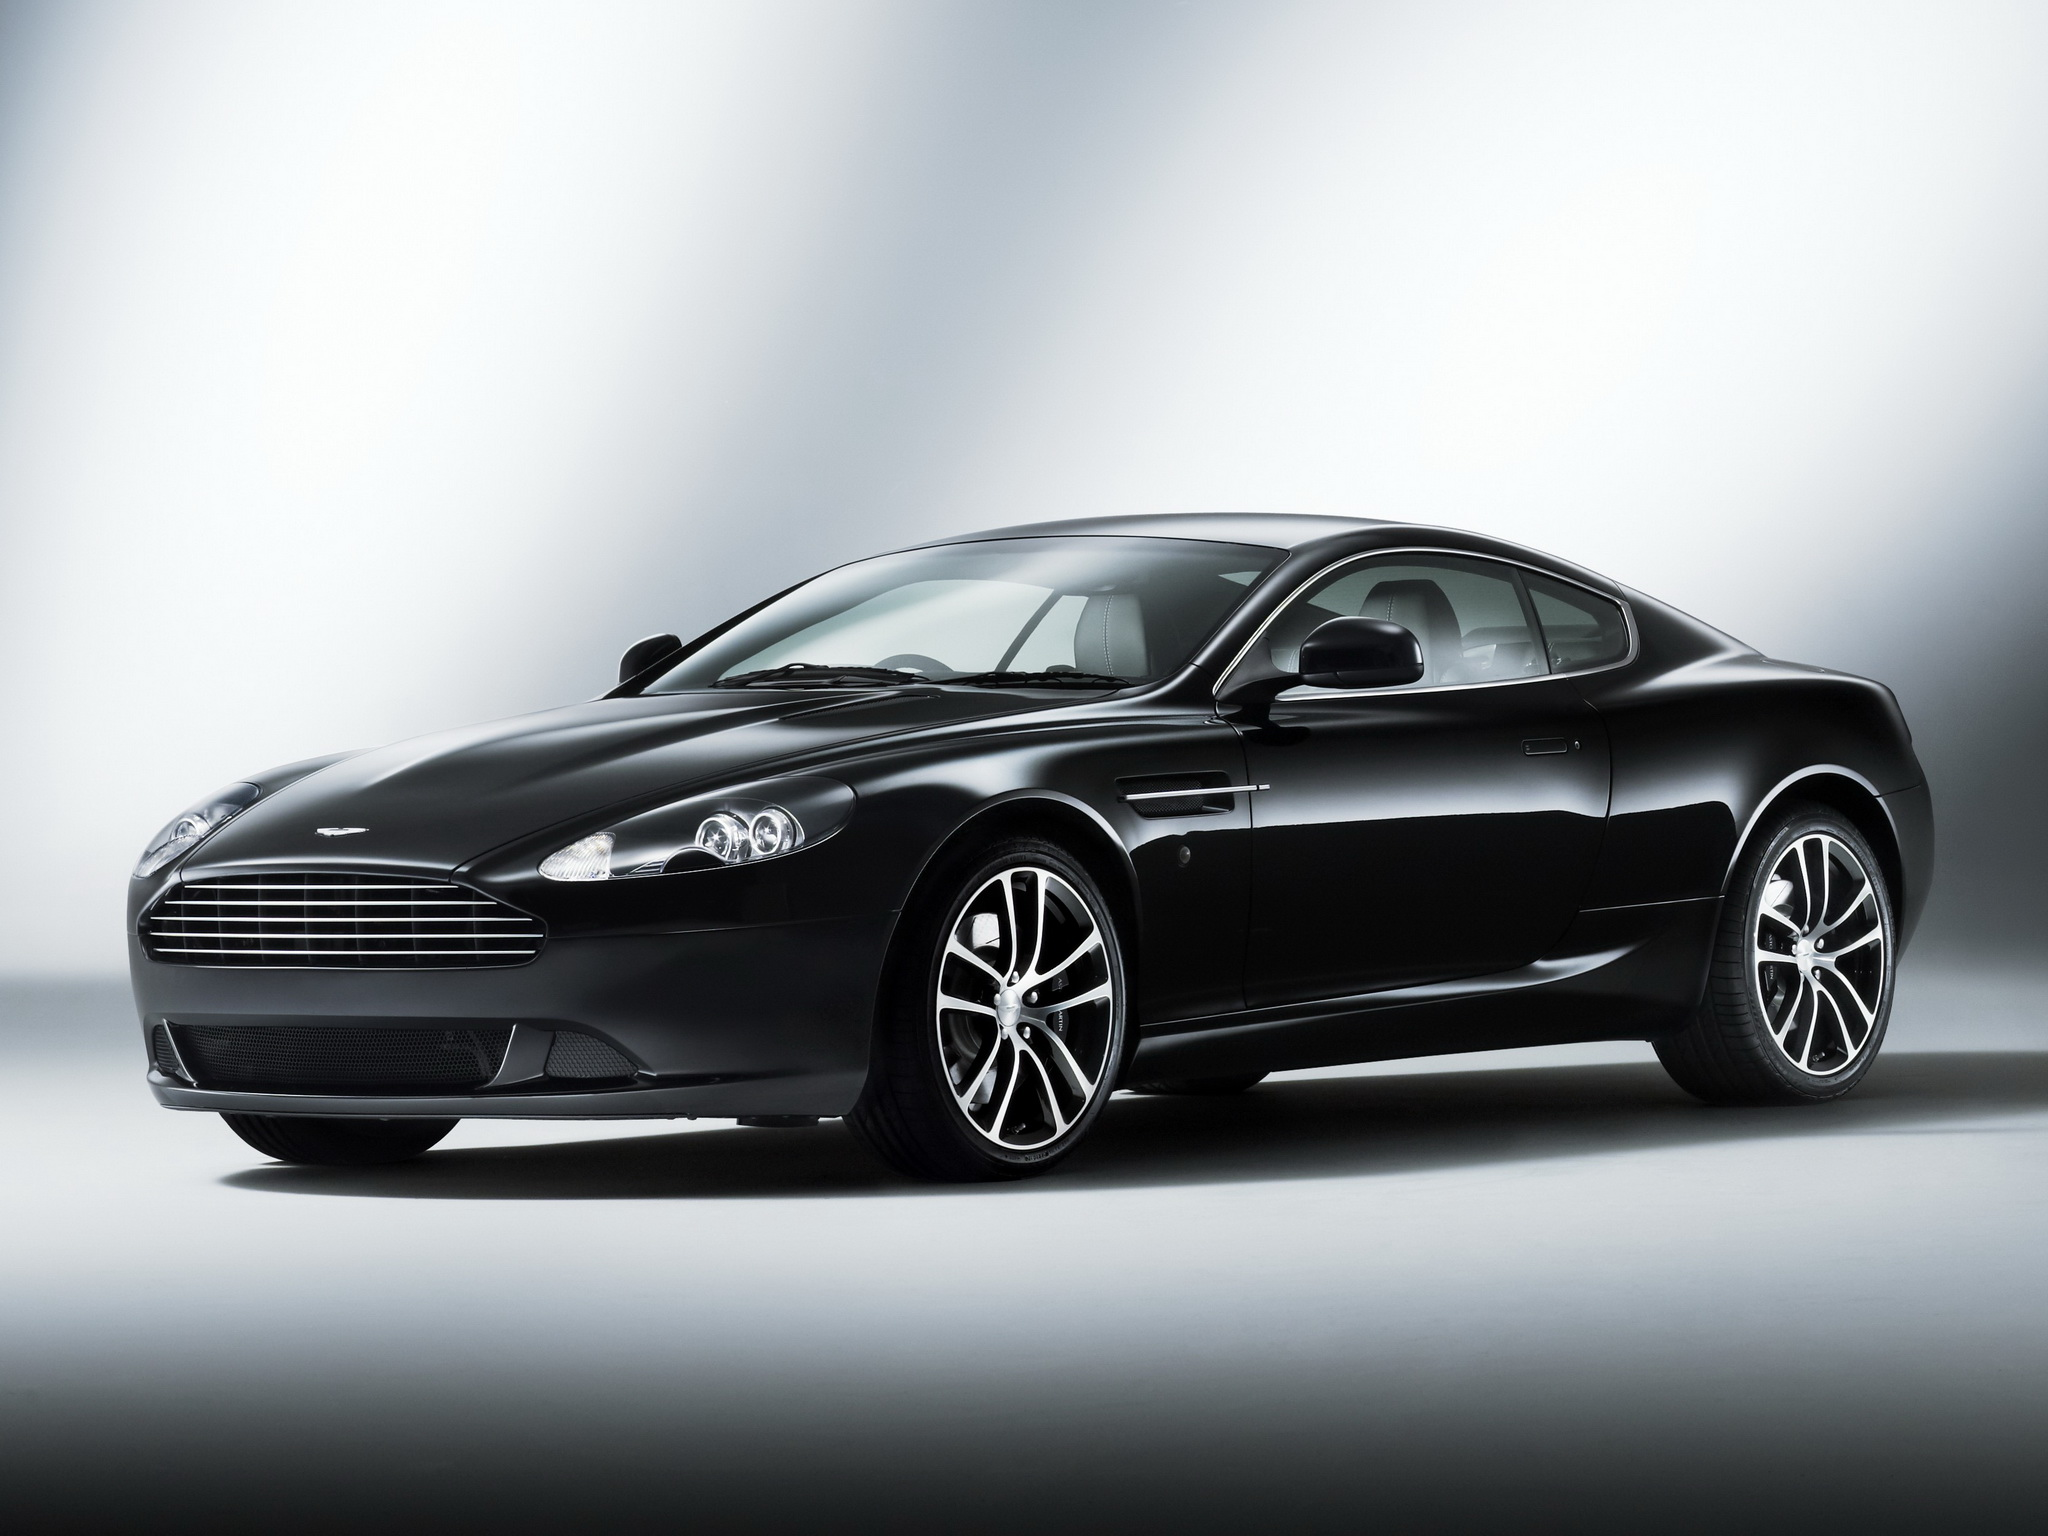 Aston Martin DB9 Carbon Black Wallpapers Car wallpapers HD 2048x1536